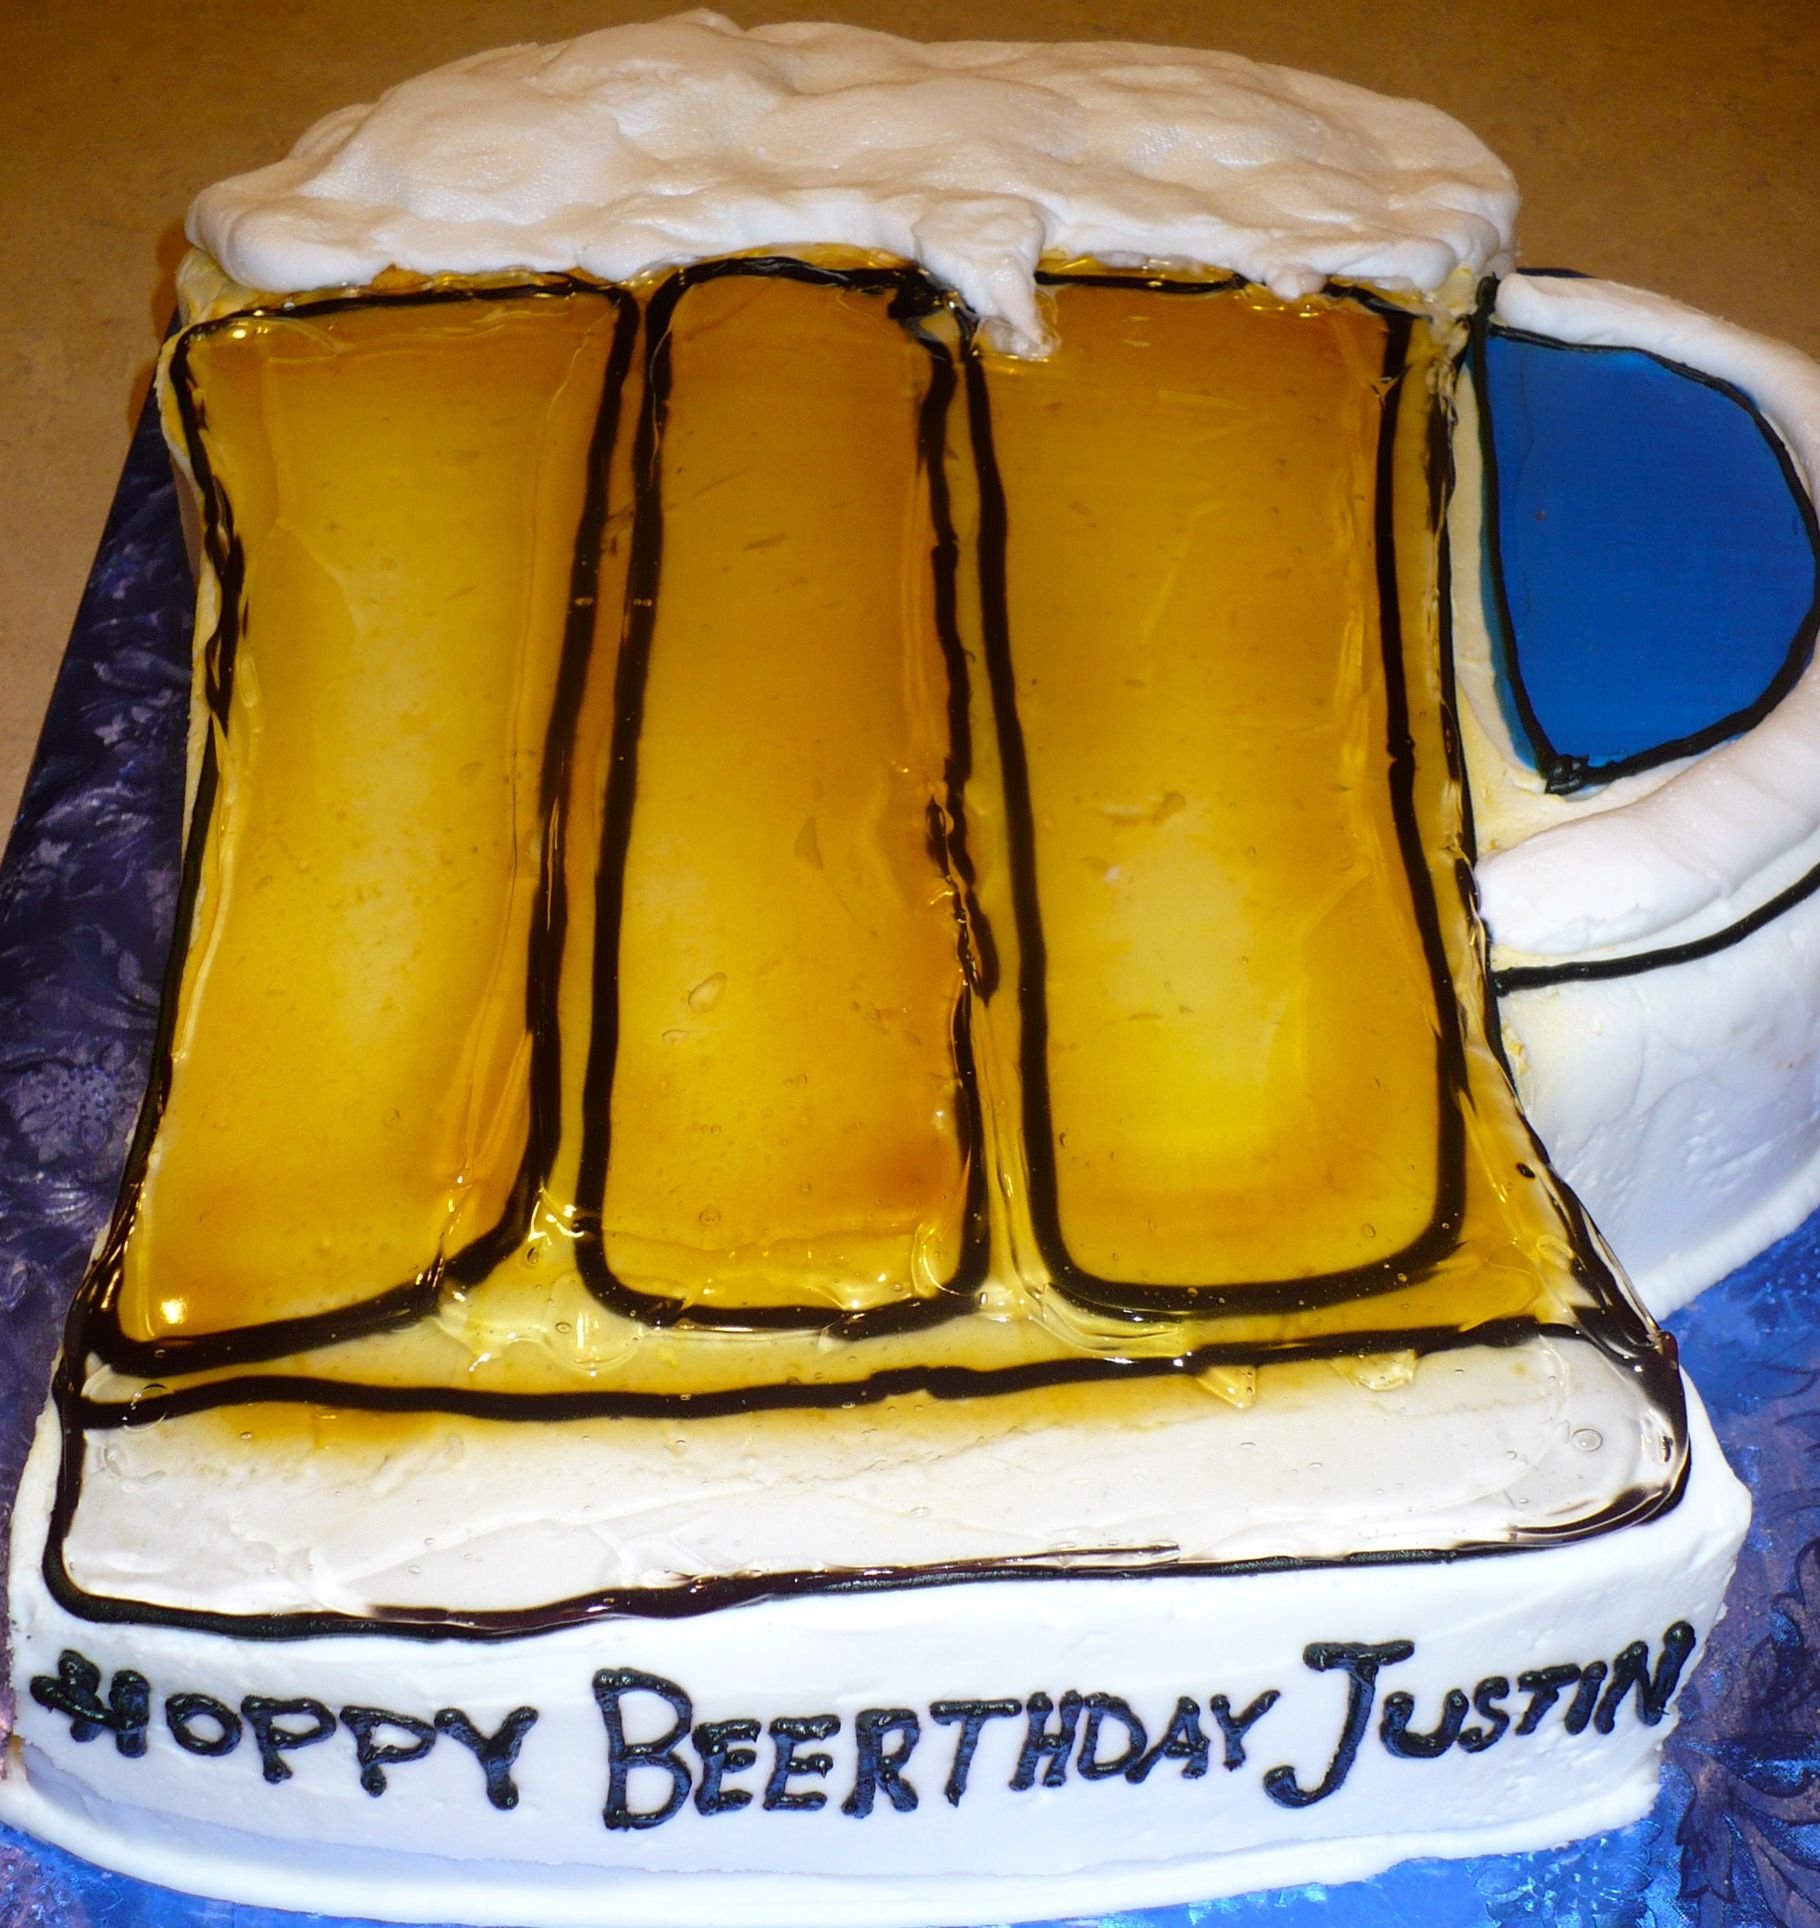 Beer Cake. I Know Someone Who May Like This For His